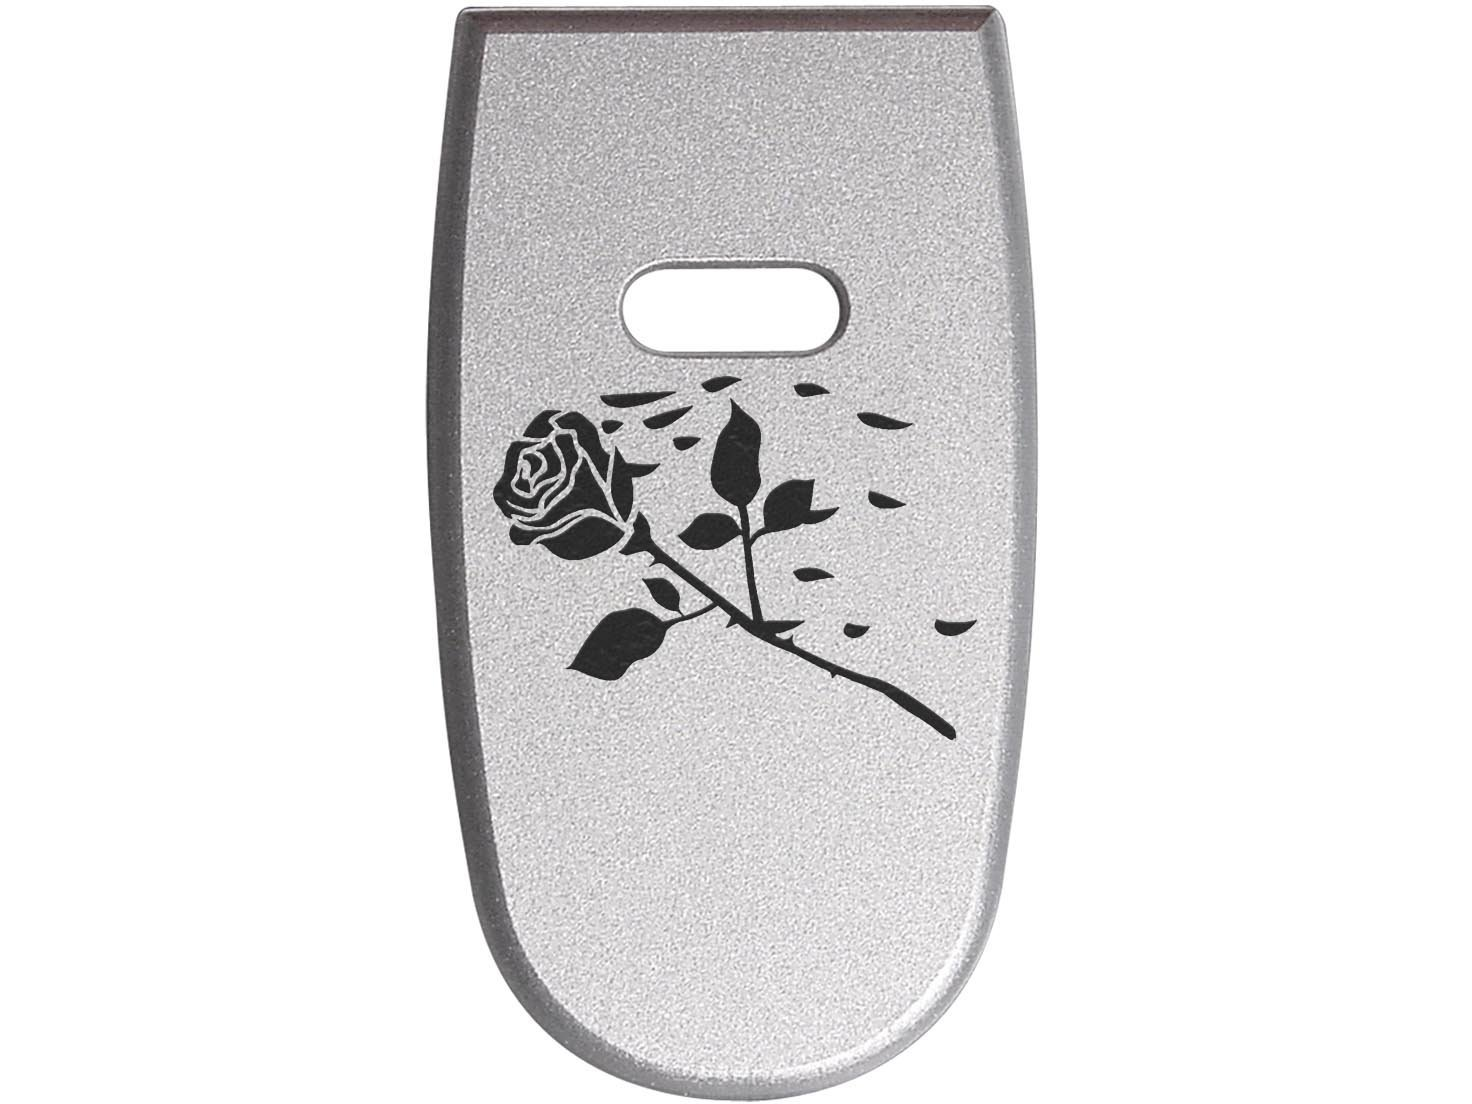 for S&W M&P Shield .45 Aluminum Floor Base Plate Silver Custom Laser Engraved: Rose Swoosh Petals By NDZ Performance